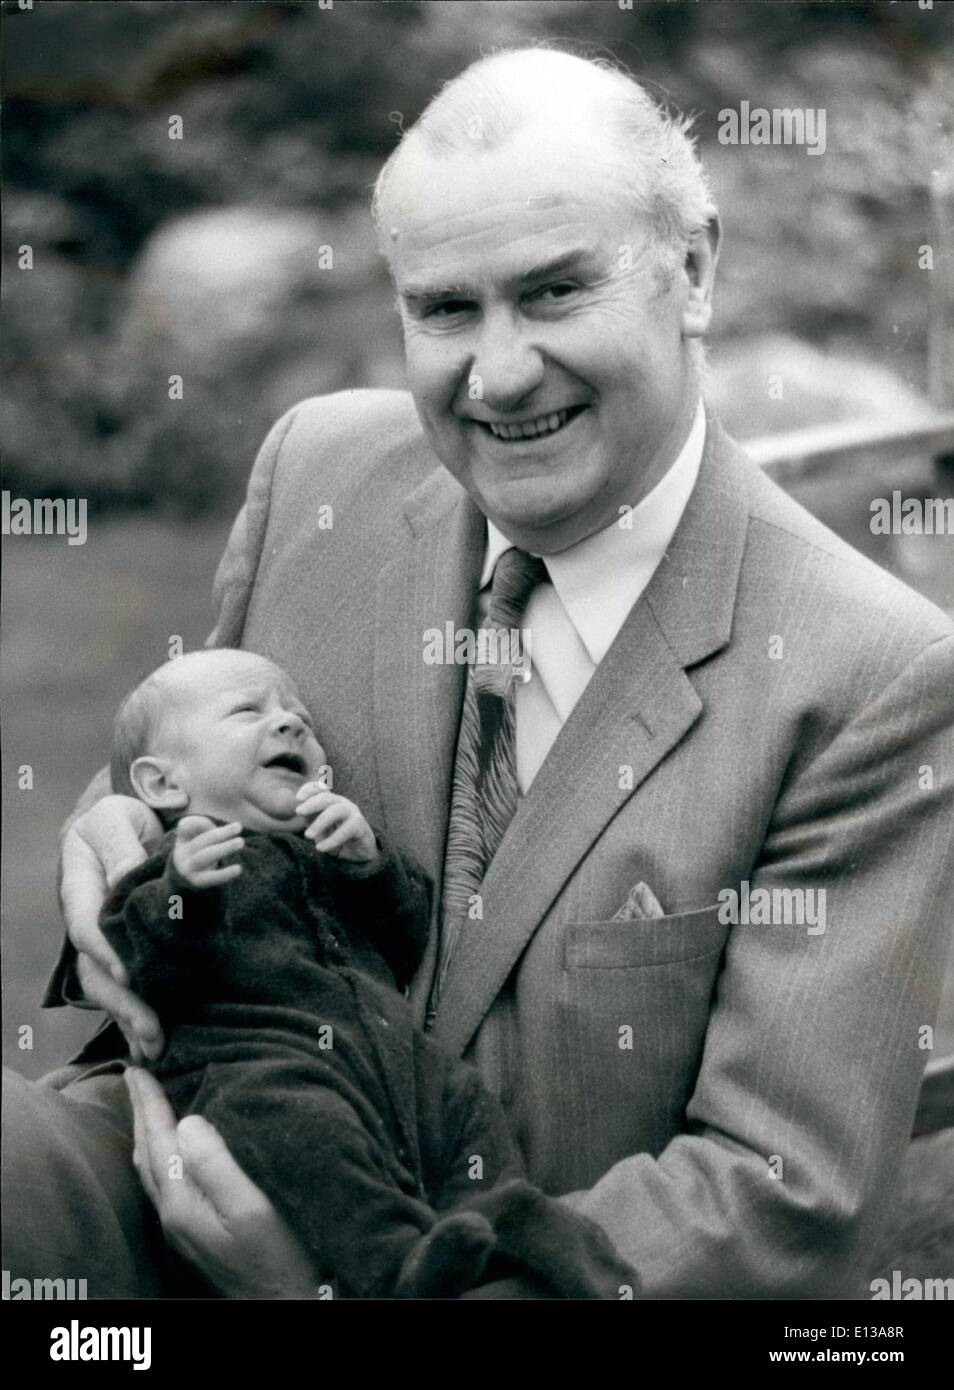 Feb. 29, 2012 - The Lord Mayor elect with his grandson, Thomas Edward. - Stock Image